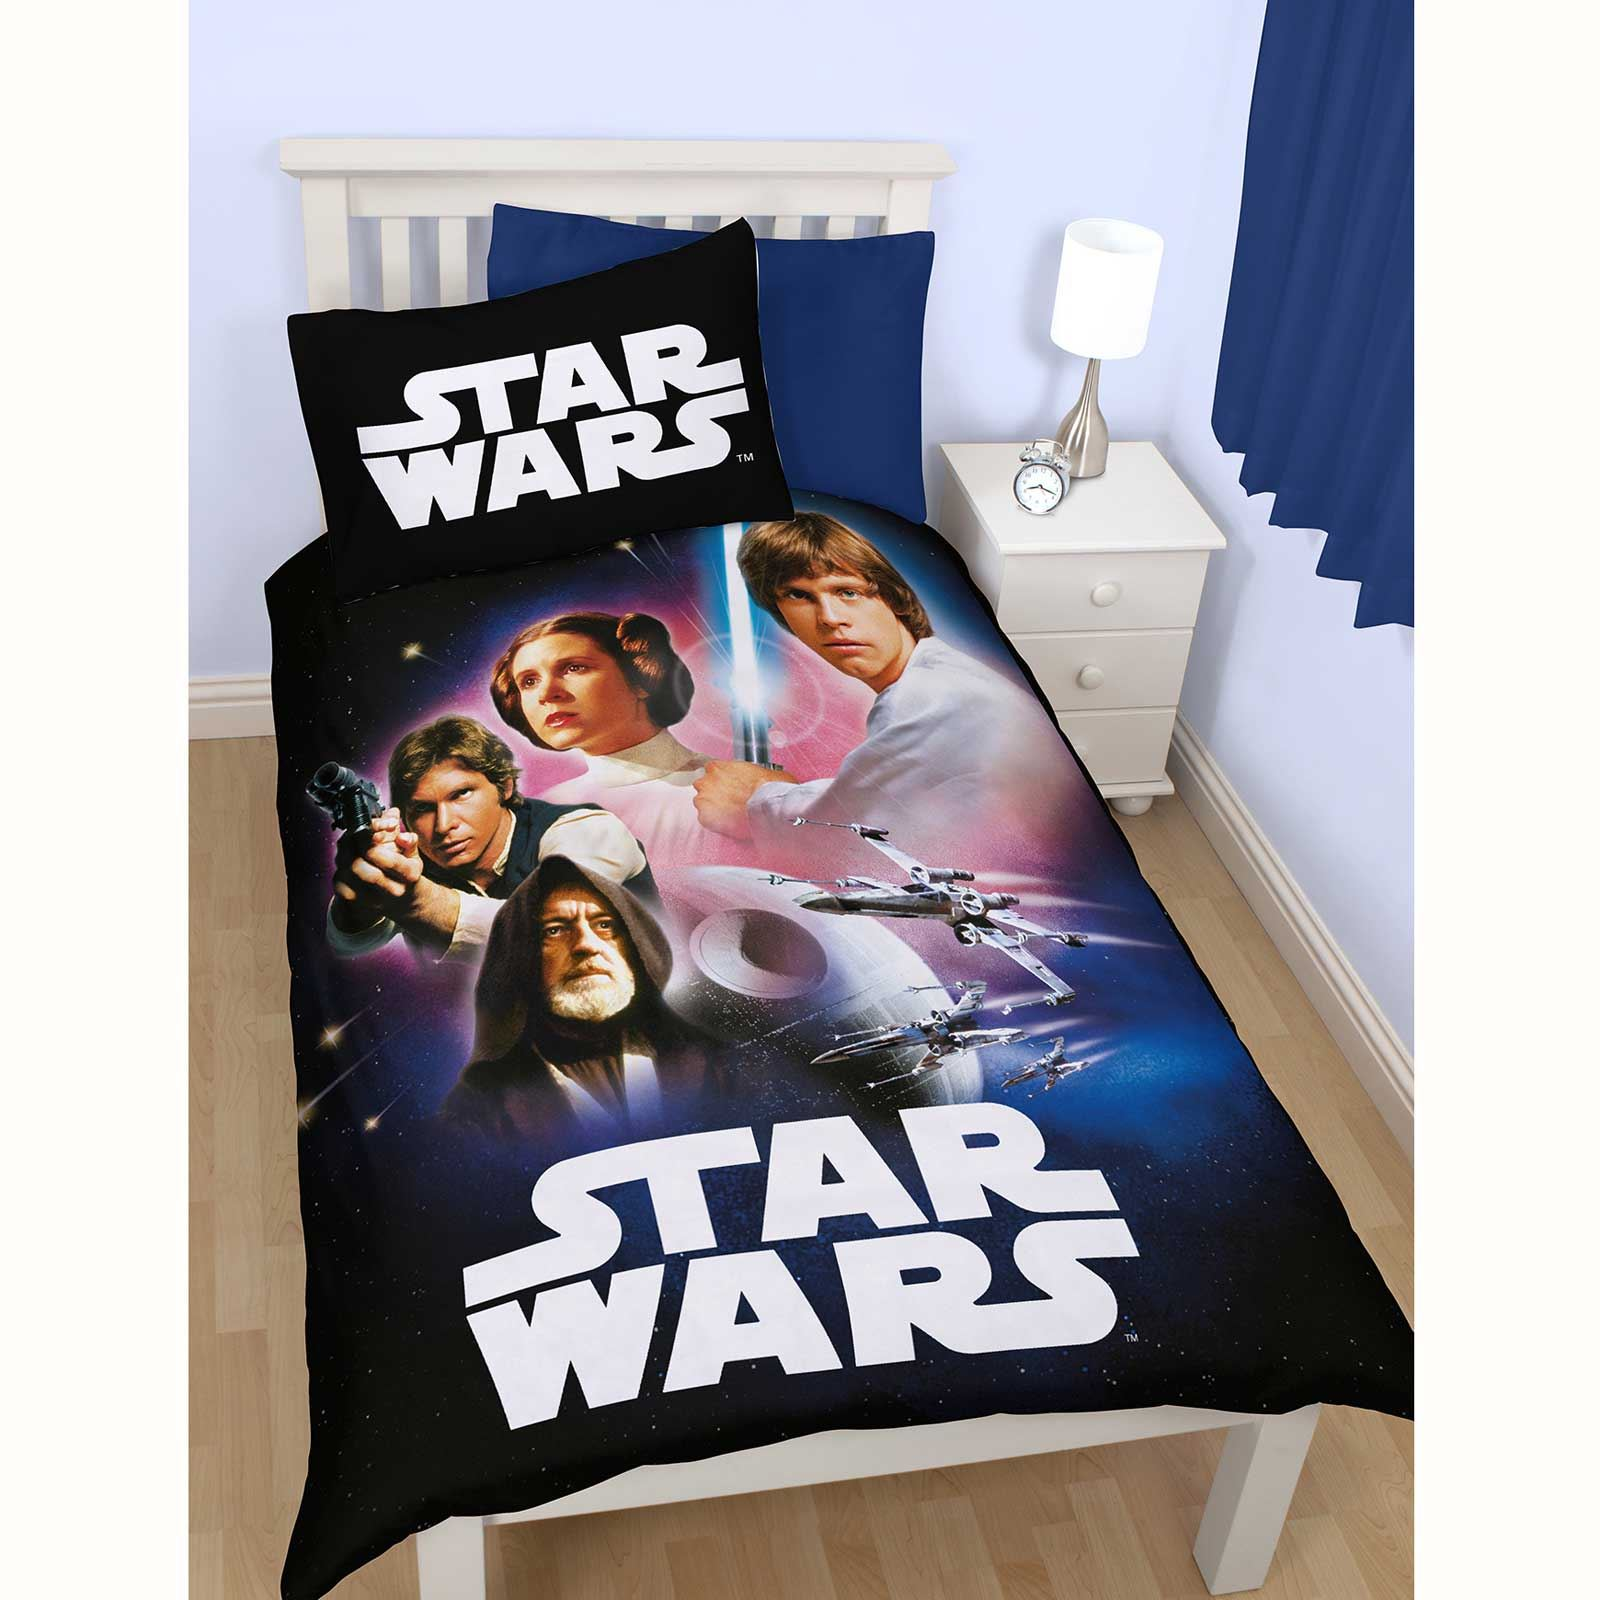 housse de couette star wars parure de lit chambre coucher neuf et officiel ebay. Black Bedroom Furniture Sets. Home Design Ideas